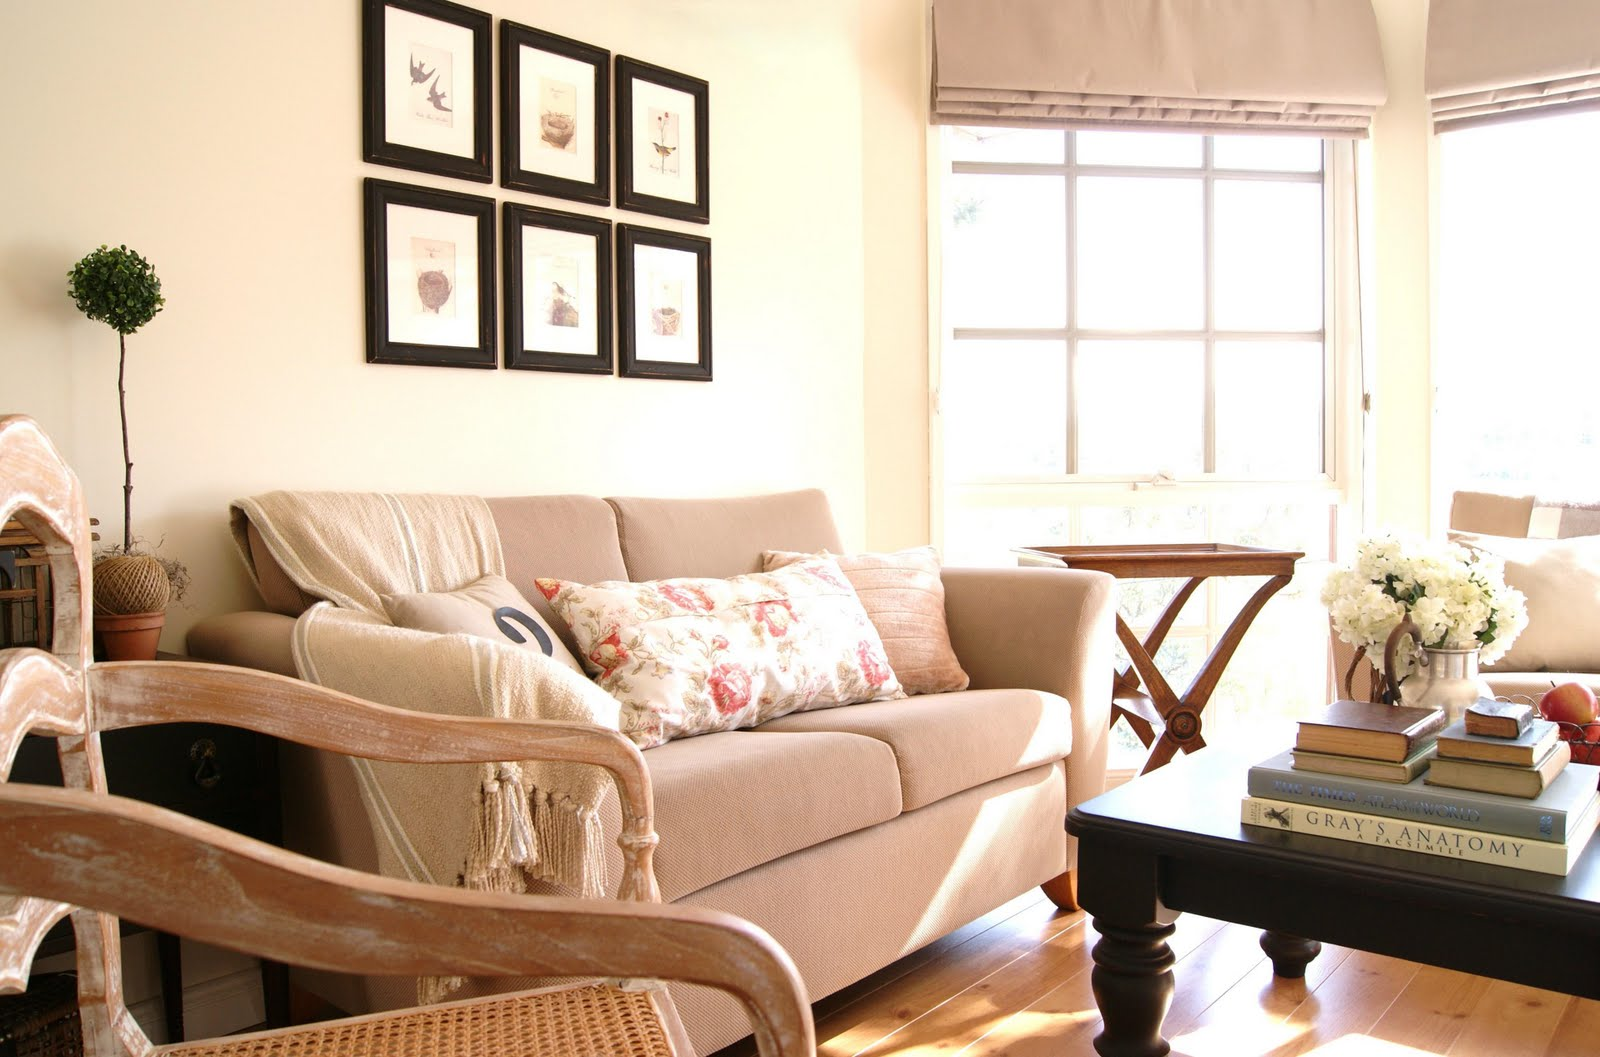 Remodelaholic | I Could Live in this Room; Living Room Before and ...